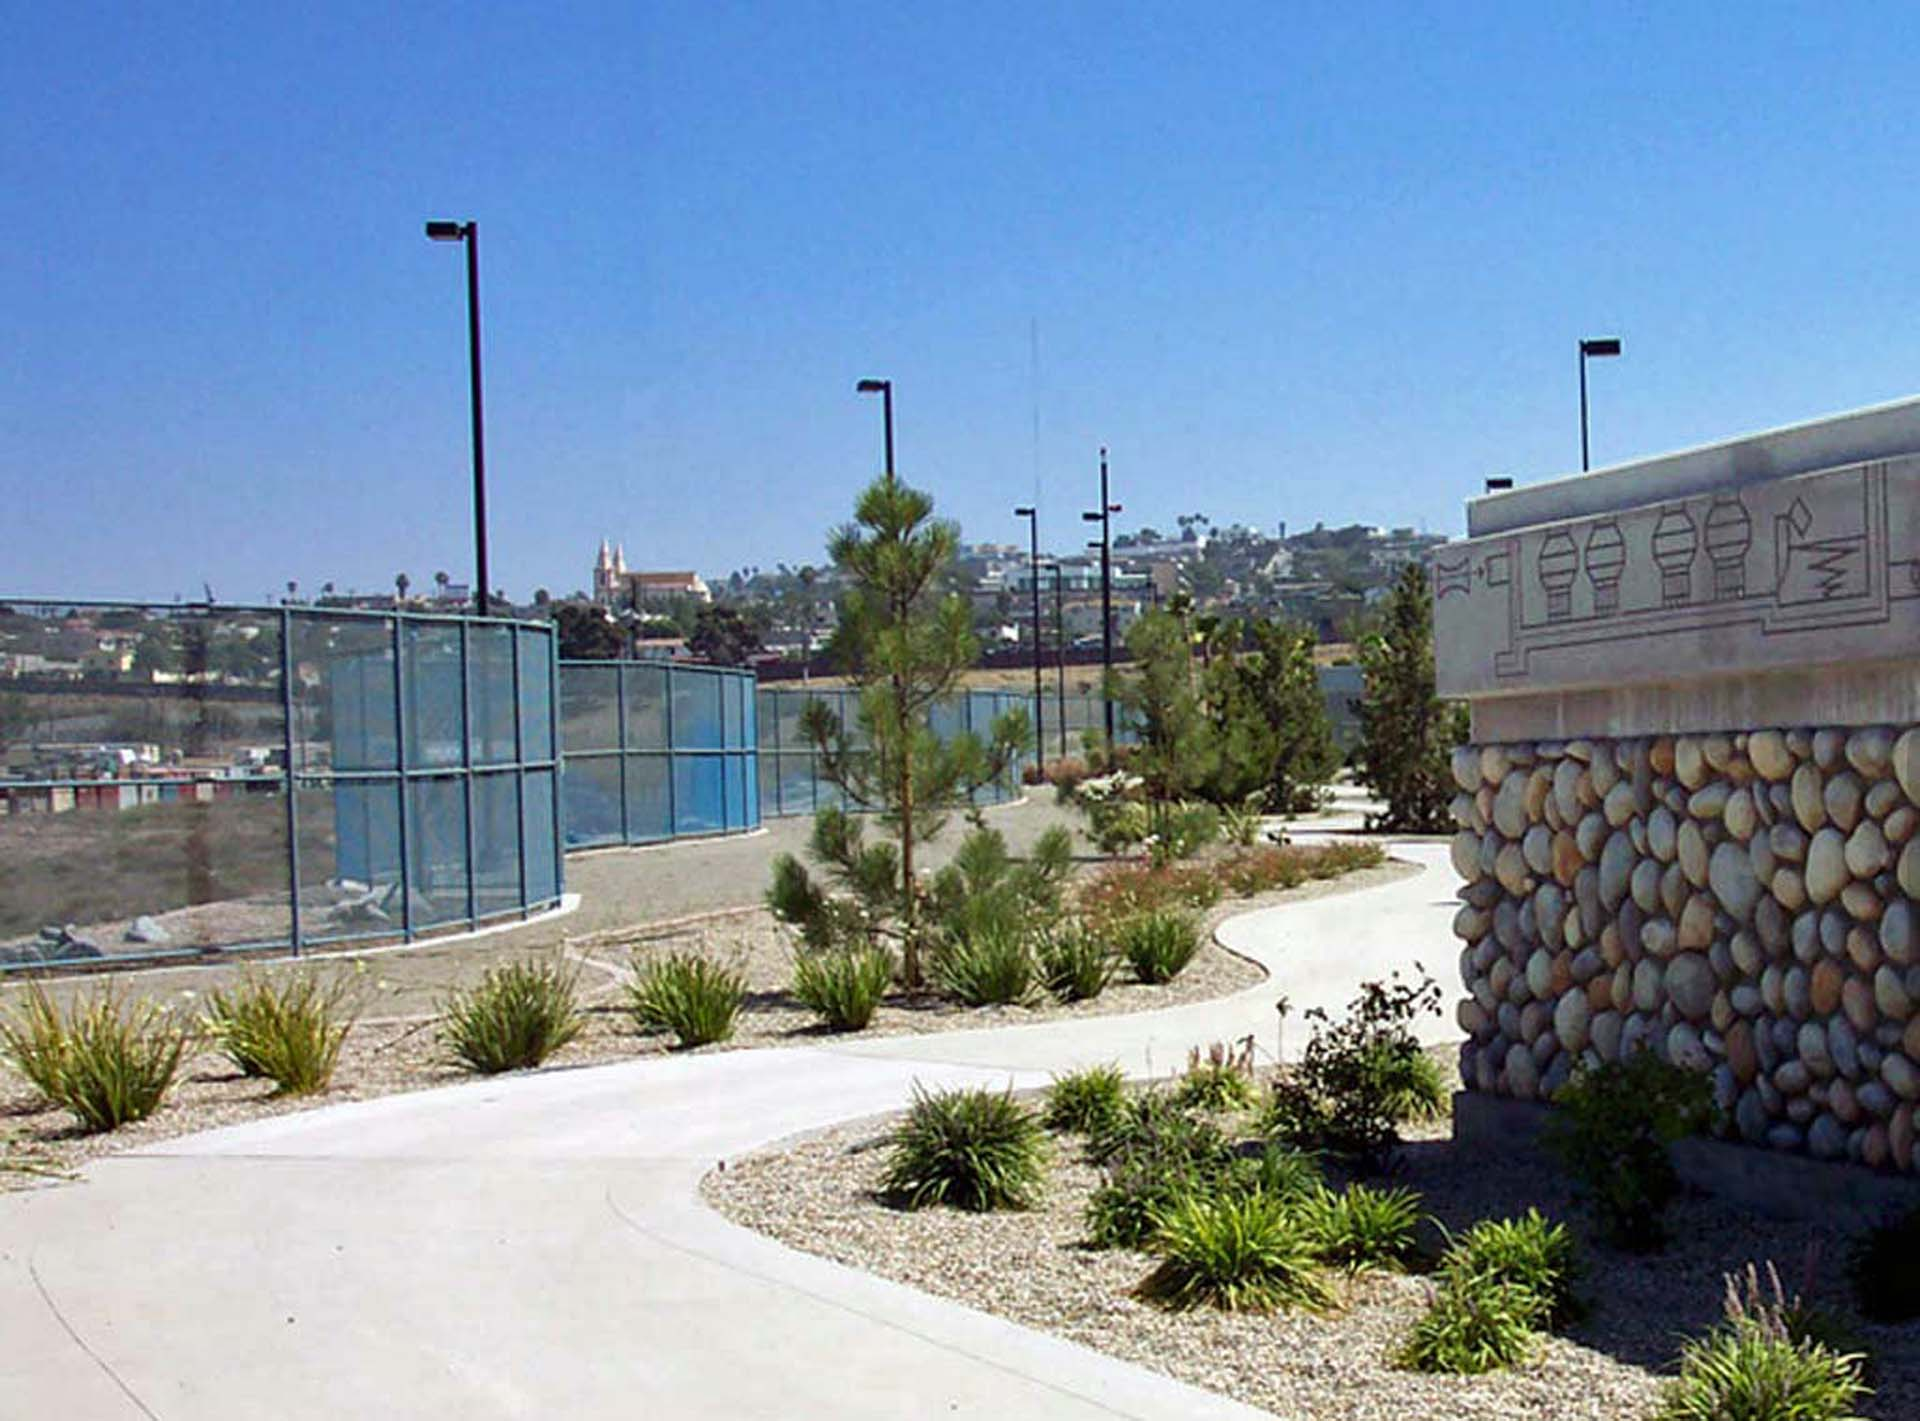 Perimeter Fence - South Bay Water Reclamation Plant